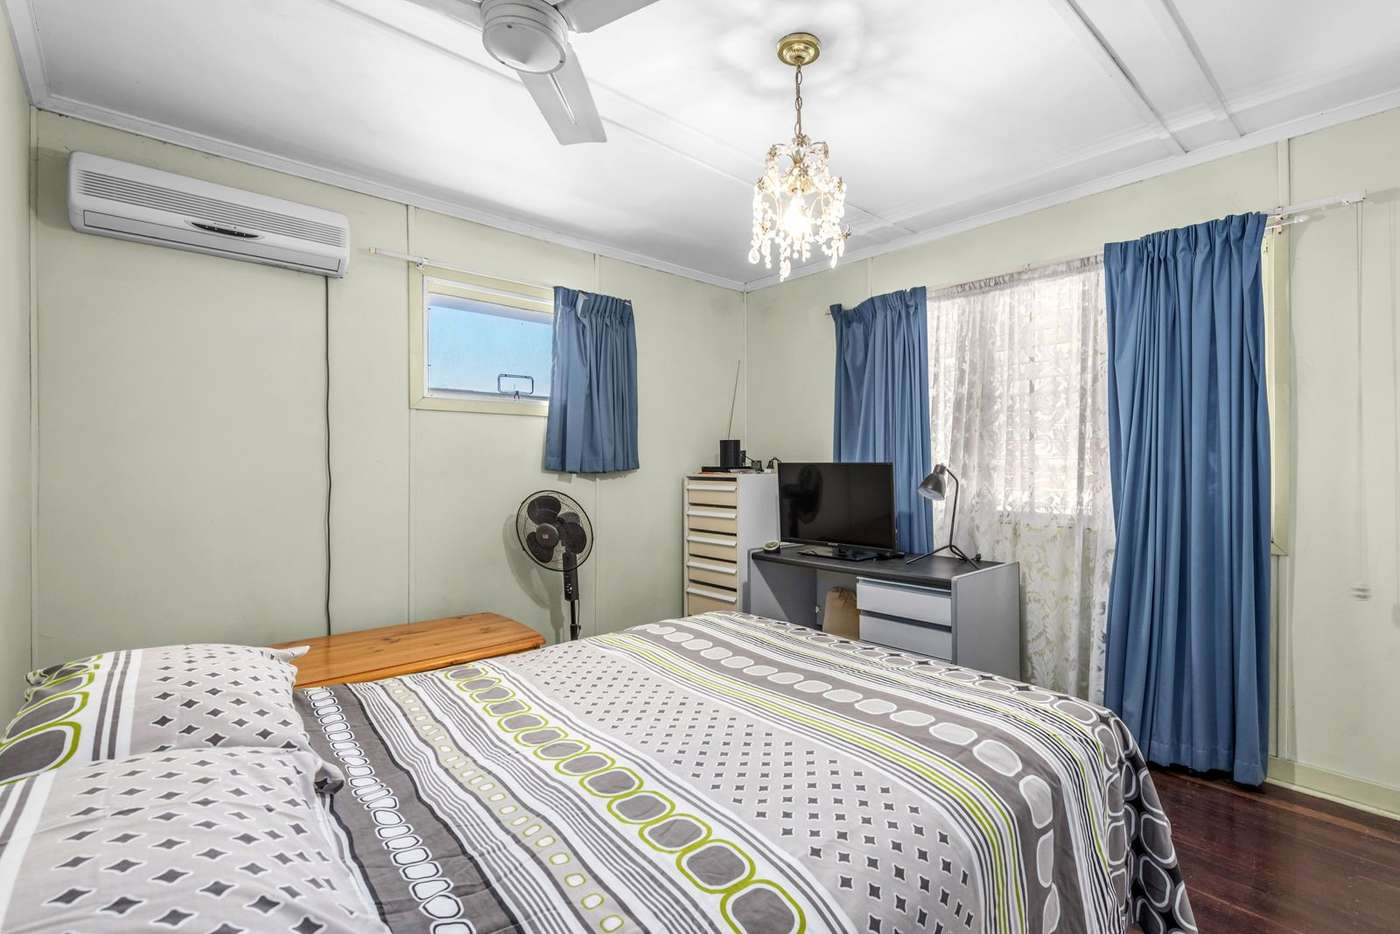 Sixth view of Homely house listing, 114 Douglas Street, Oxley QLD 4075